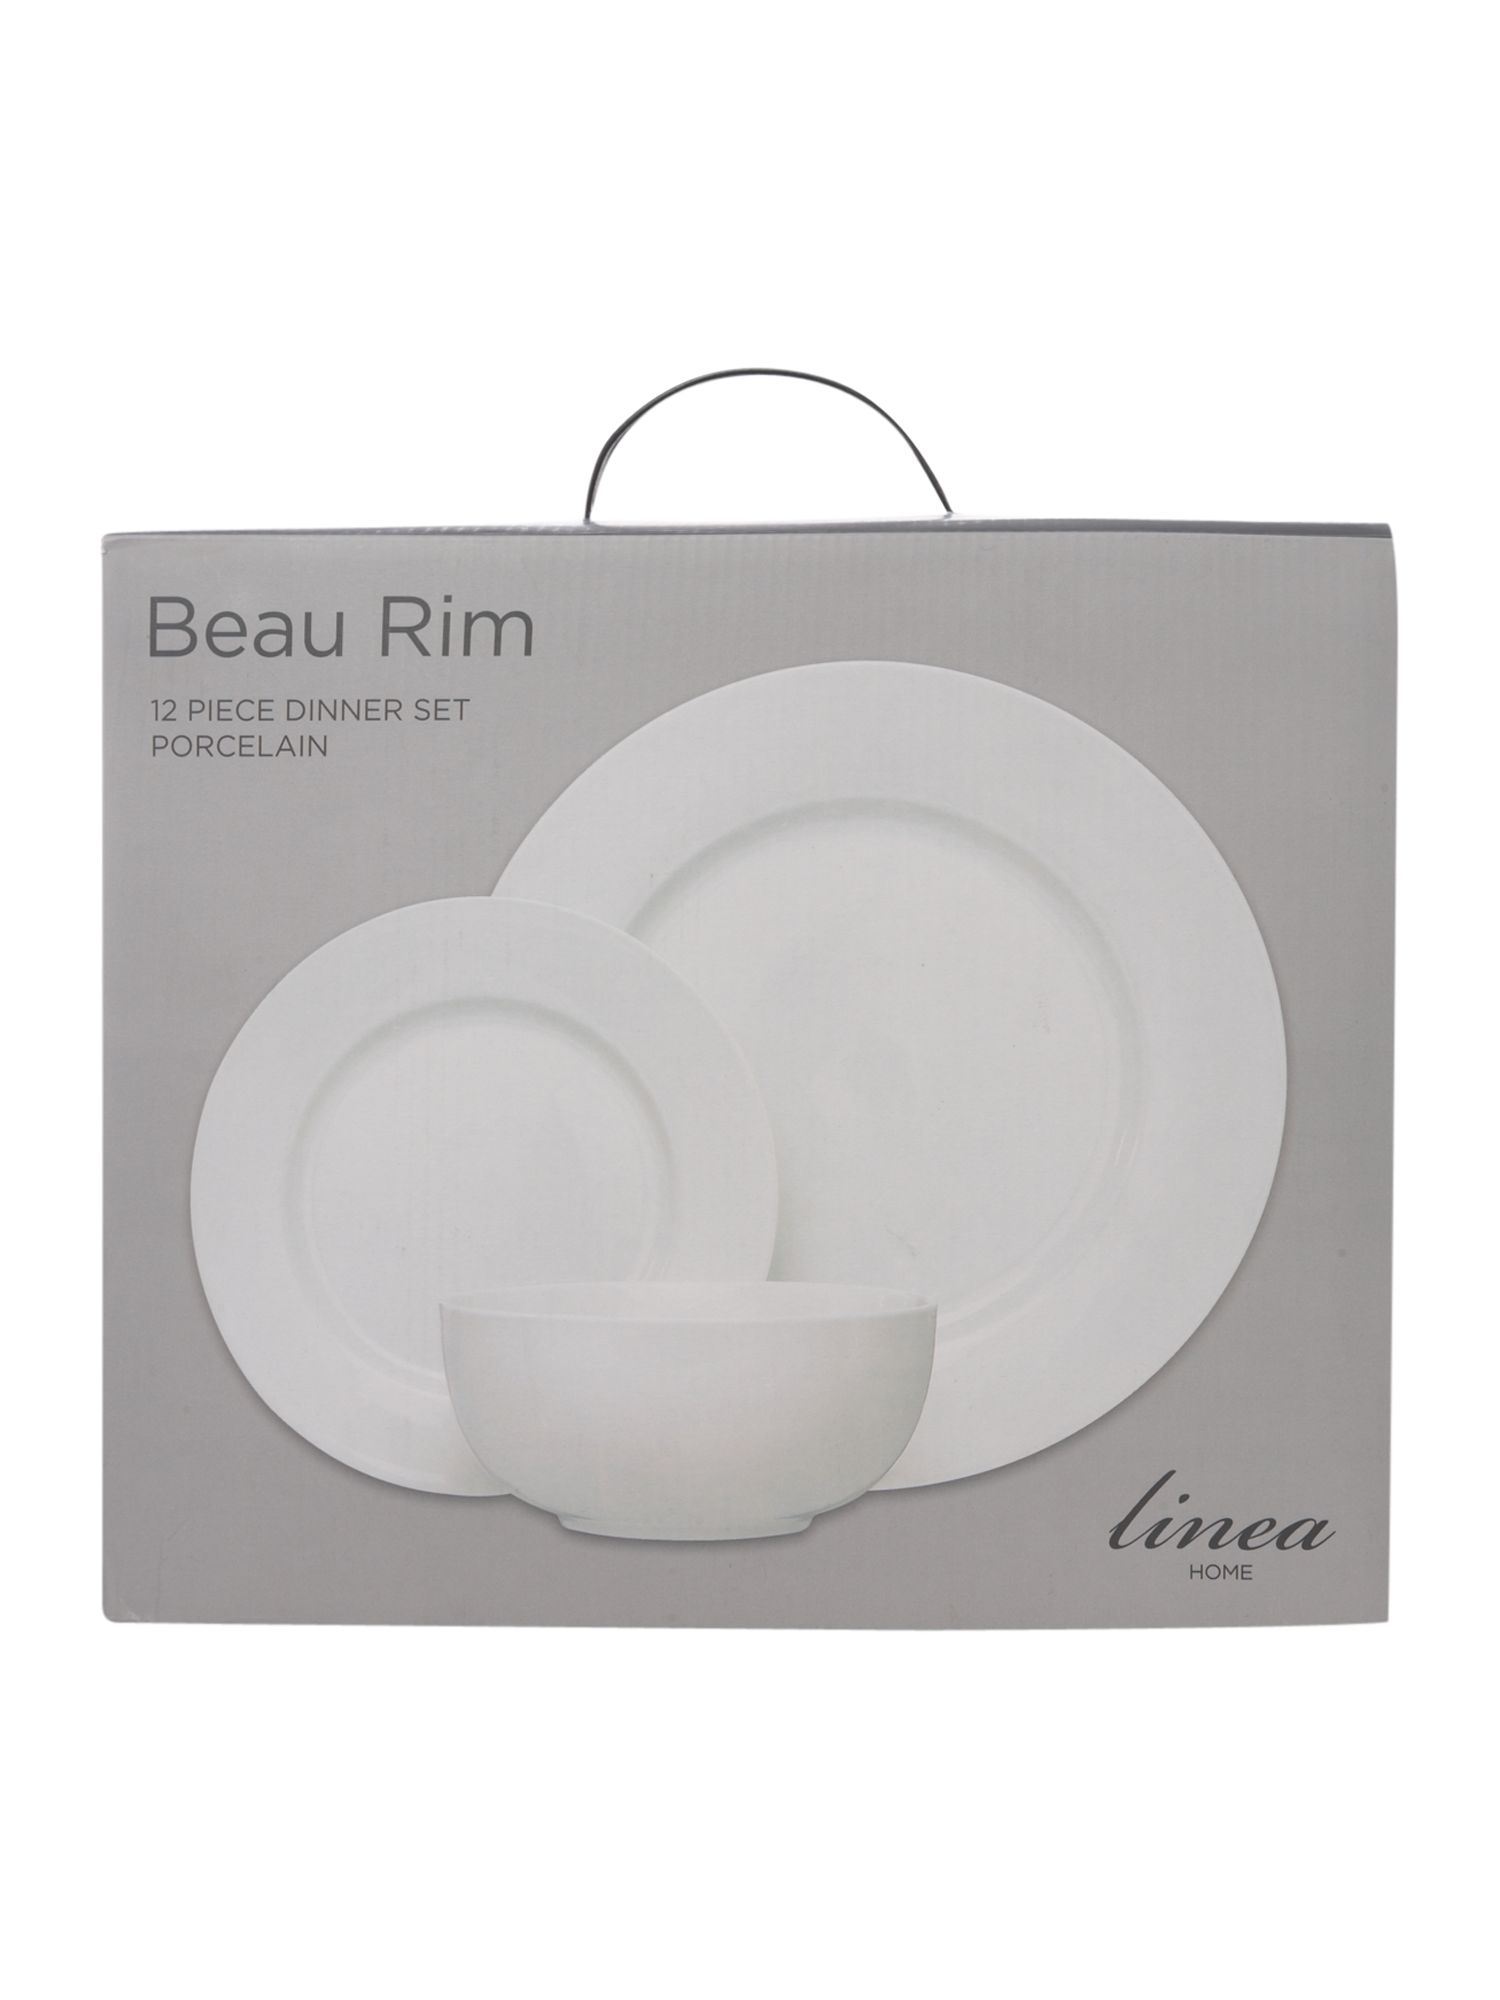 Beau 12 piece dinner set